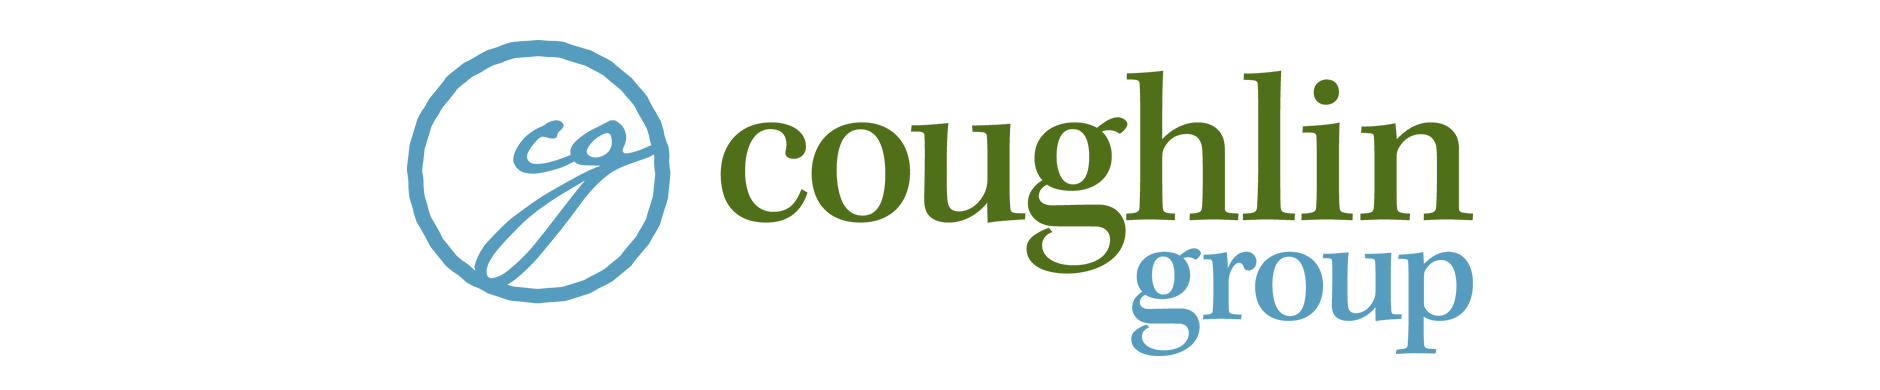 Coughlin Group